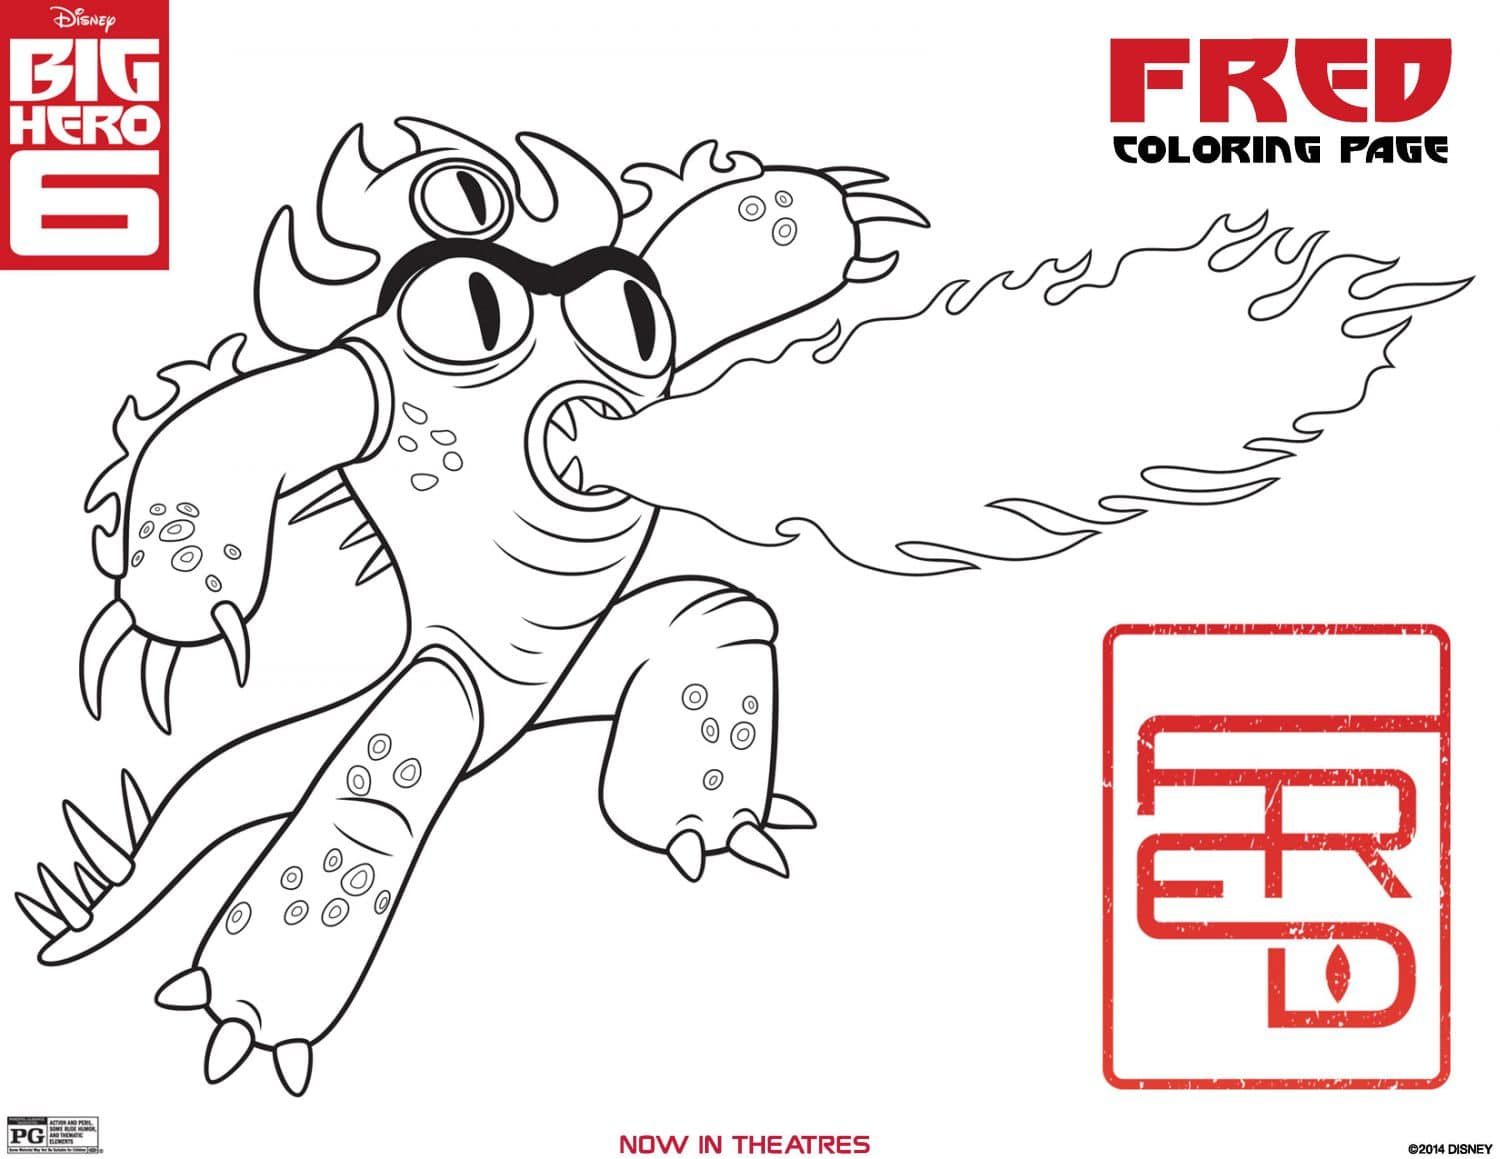 Big hero 6 coloring page fred